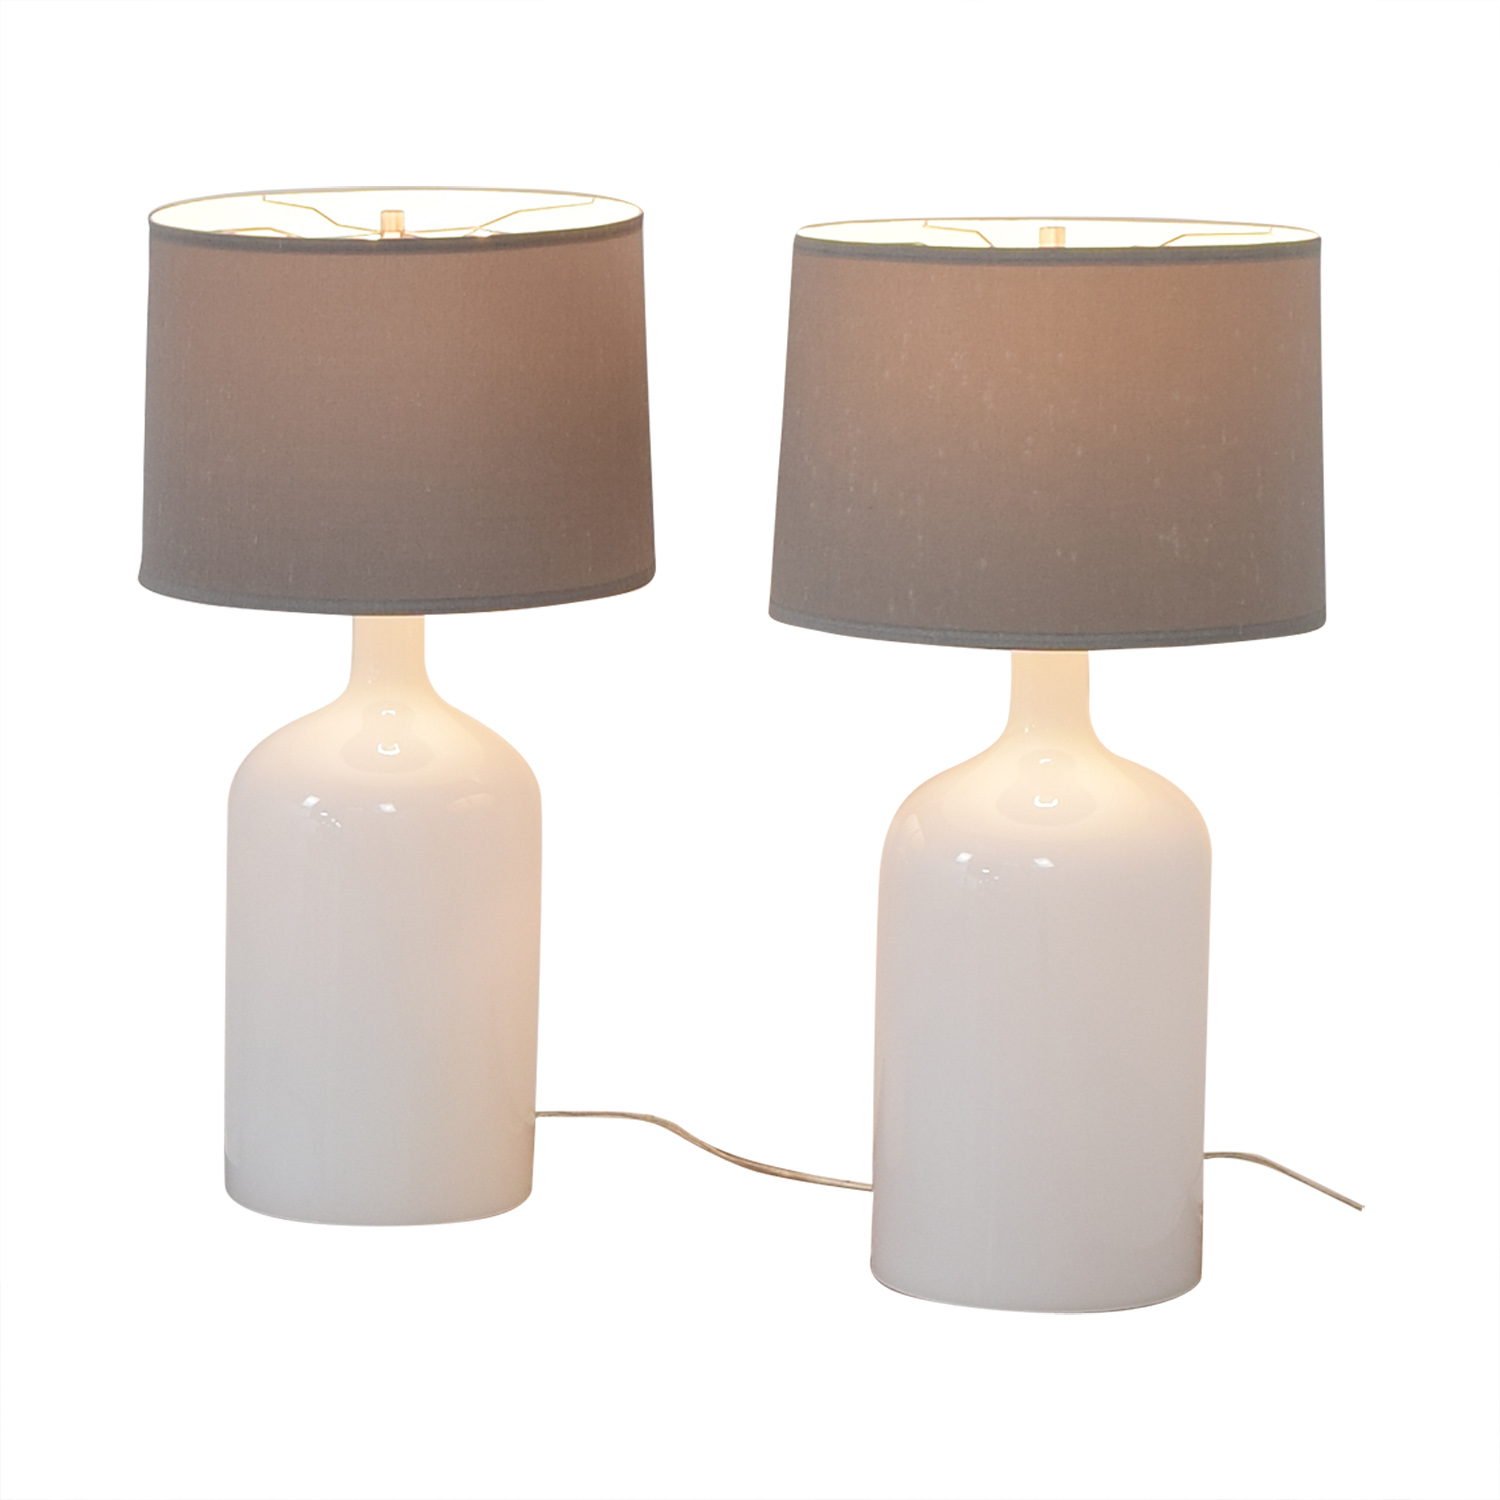 Crate & Barrel Crate & Barrel Della Table Lamps Decor